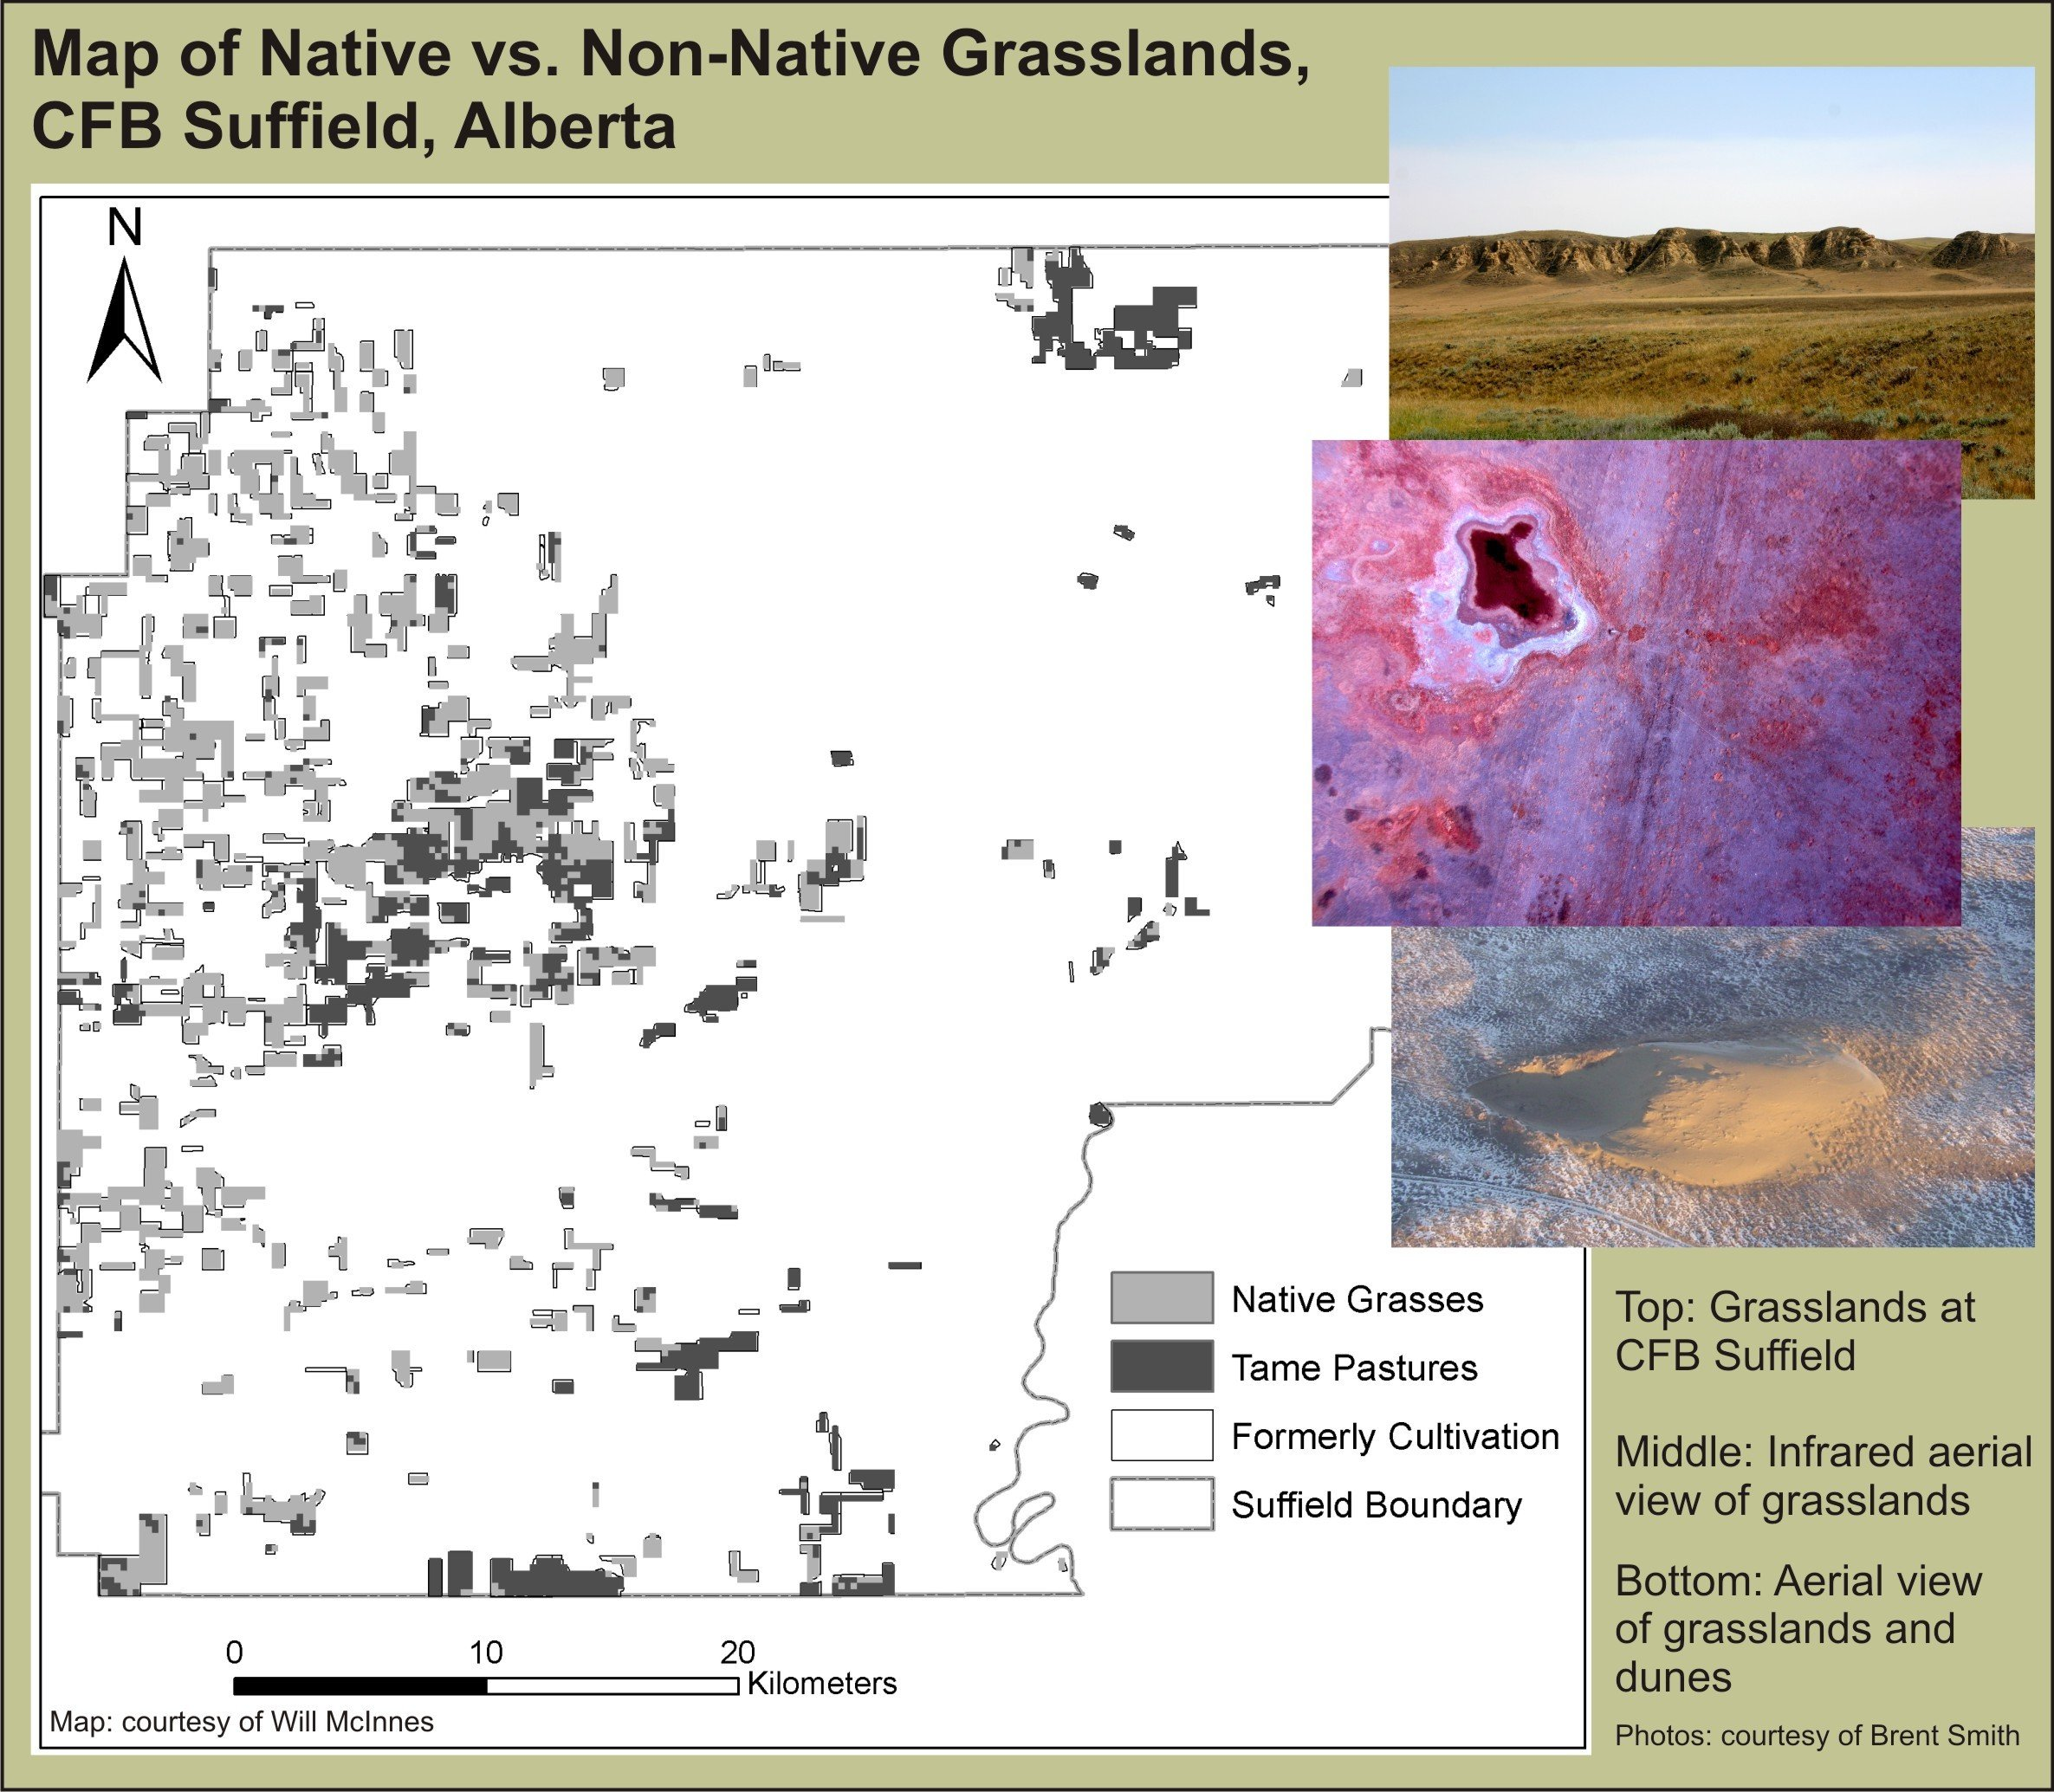 A map of native vs. non-native grassland types at CFB Suffield